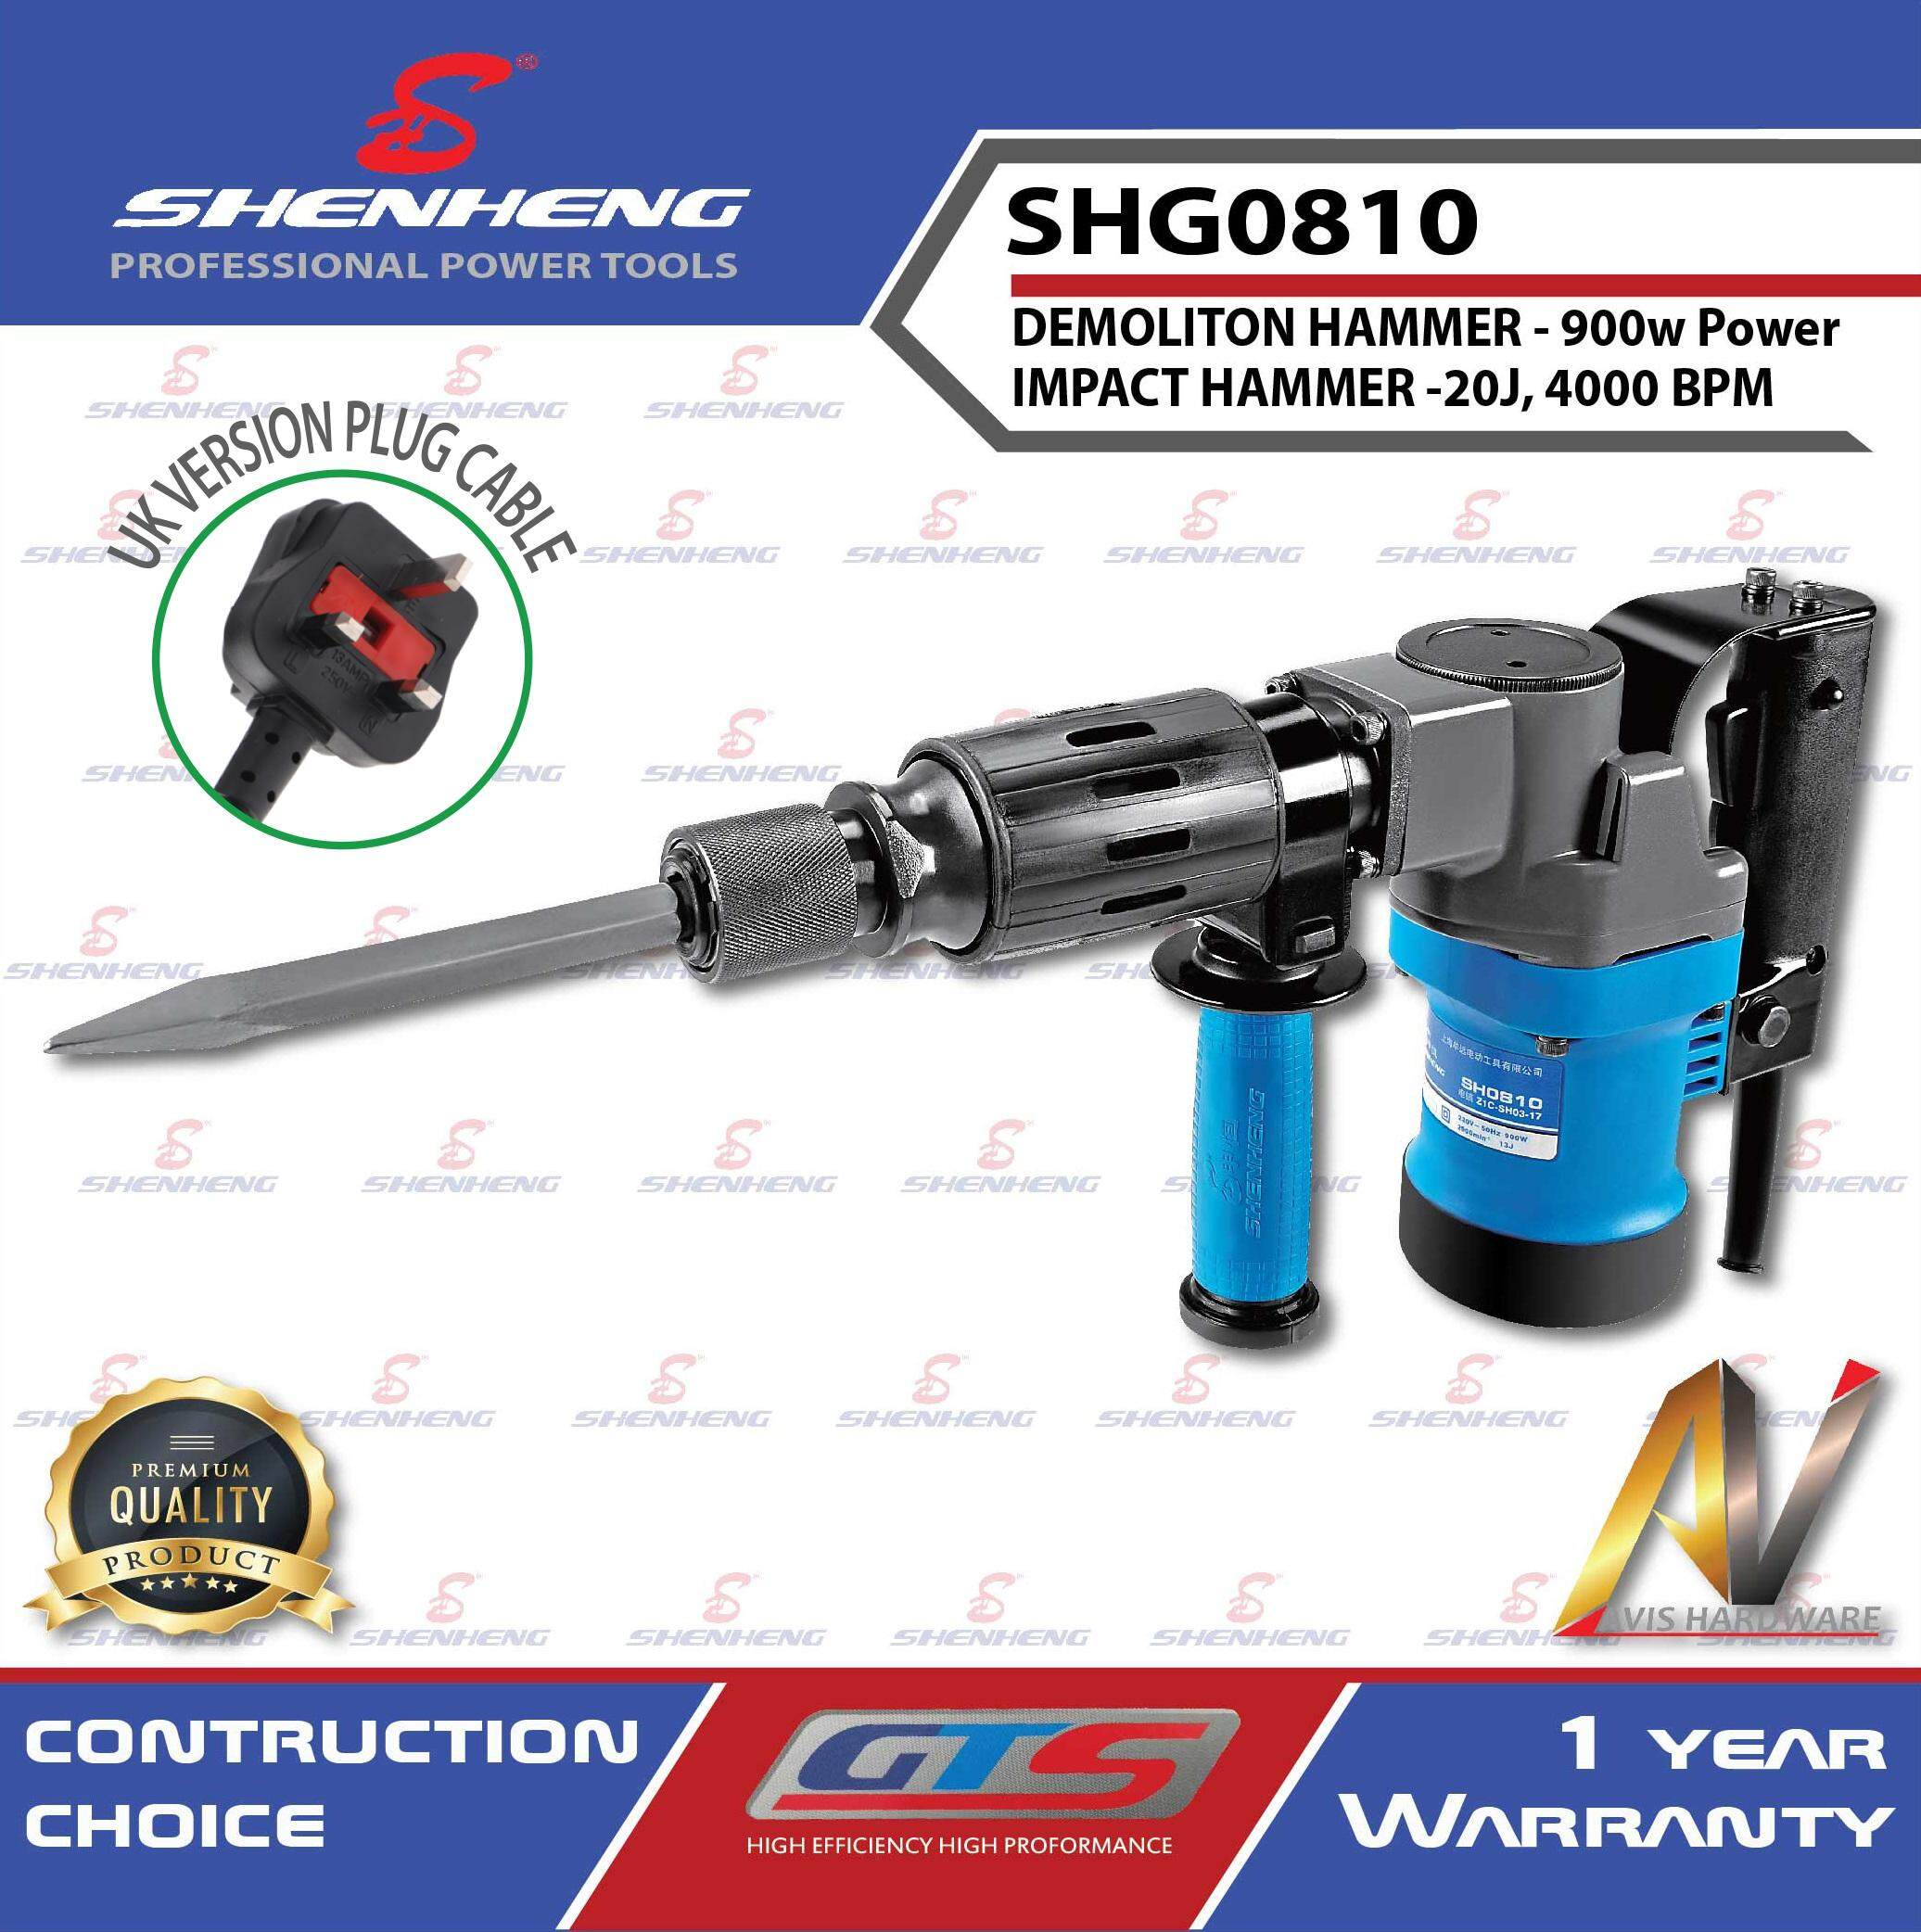 SHENHENG Demolition Hammer SHG0810 (1 Year Warranty)